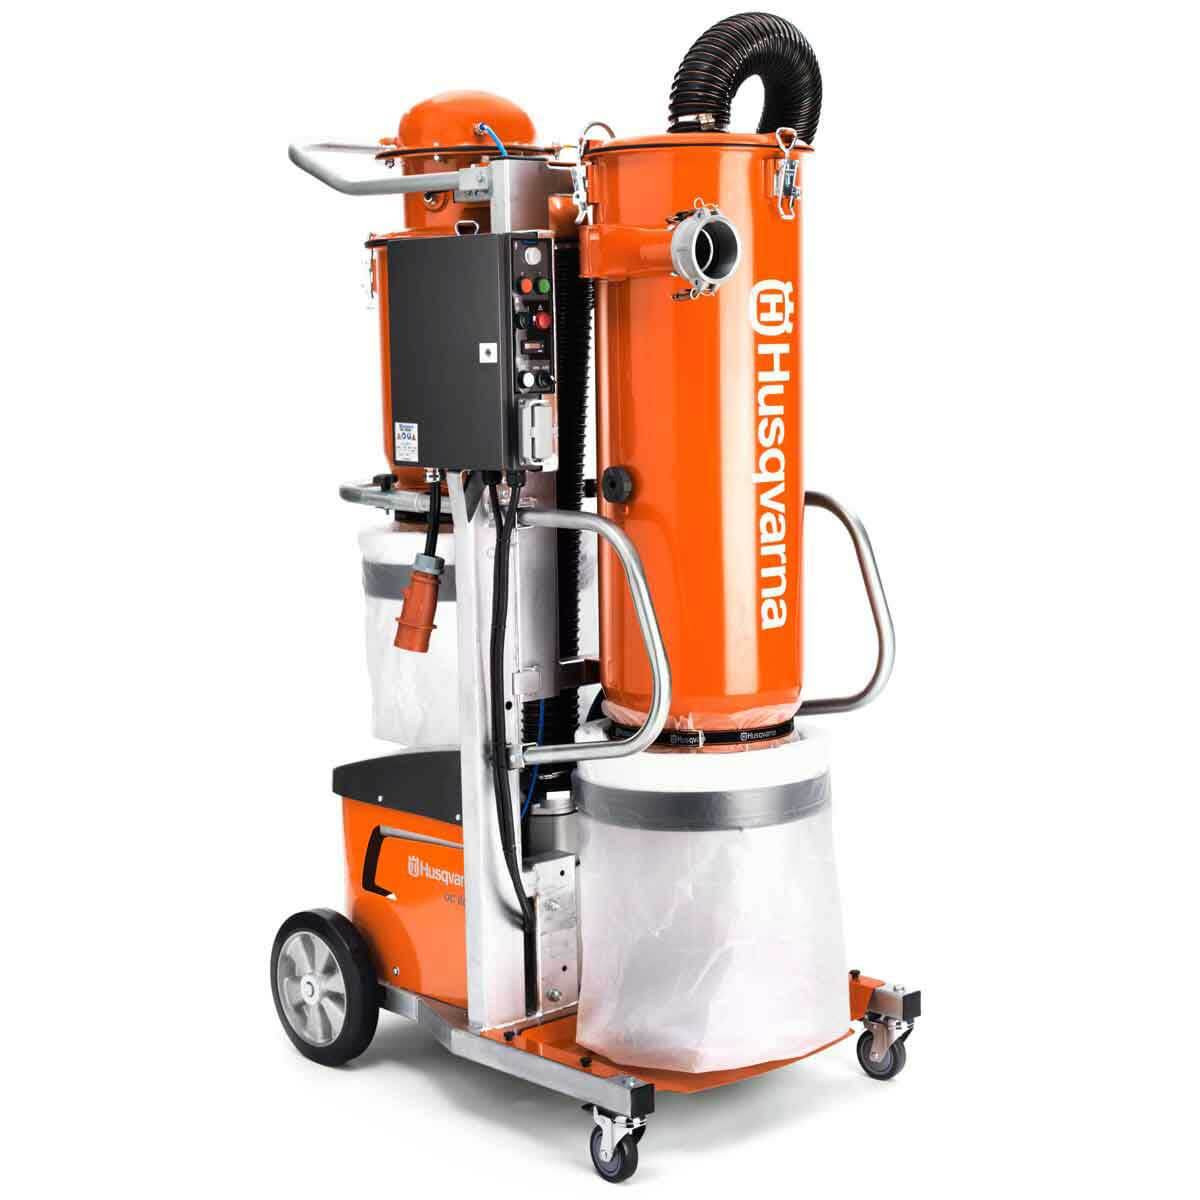 Husqvarna industrial vacuum side